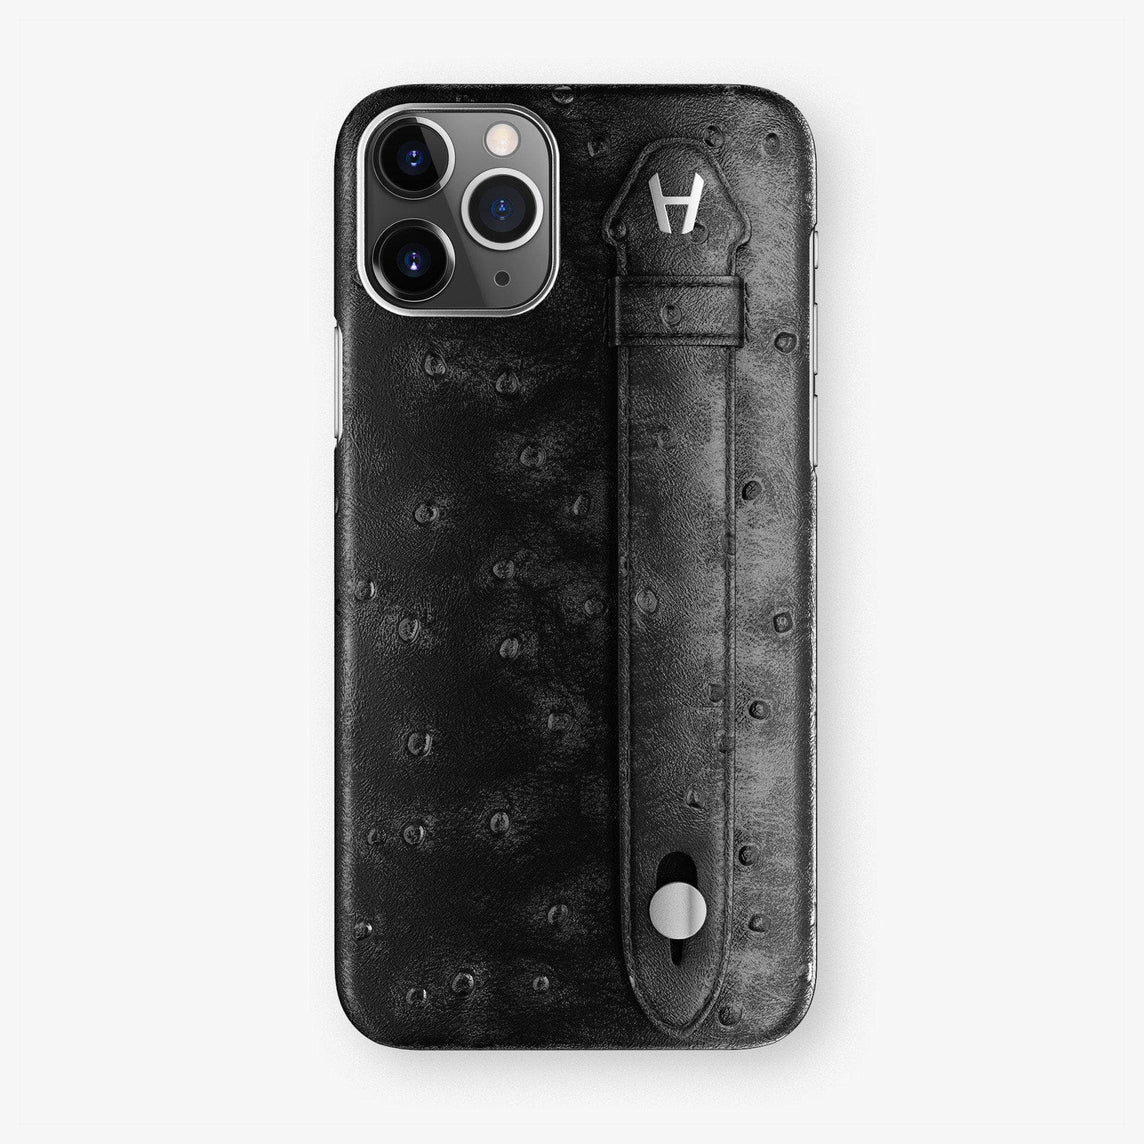 Ostrich Finger Case iPhone 11 | Black - Stainless Steel